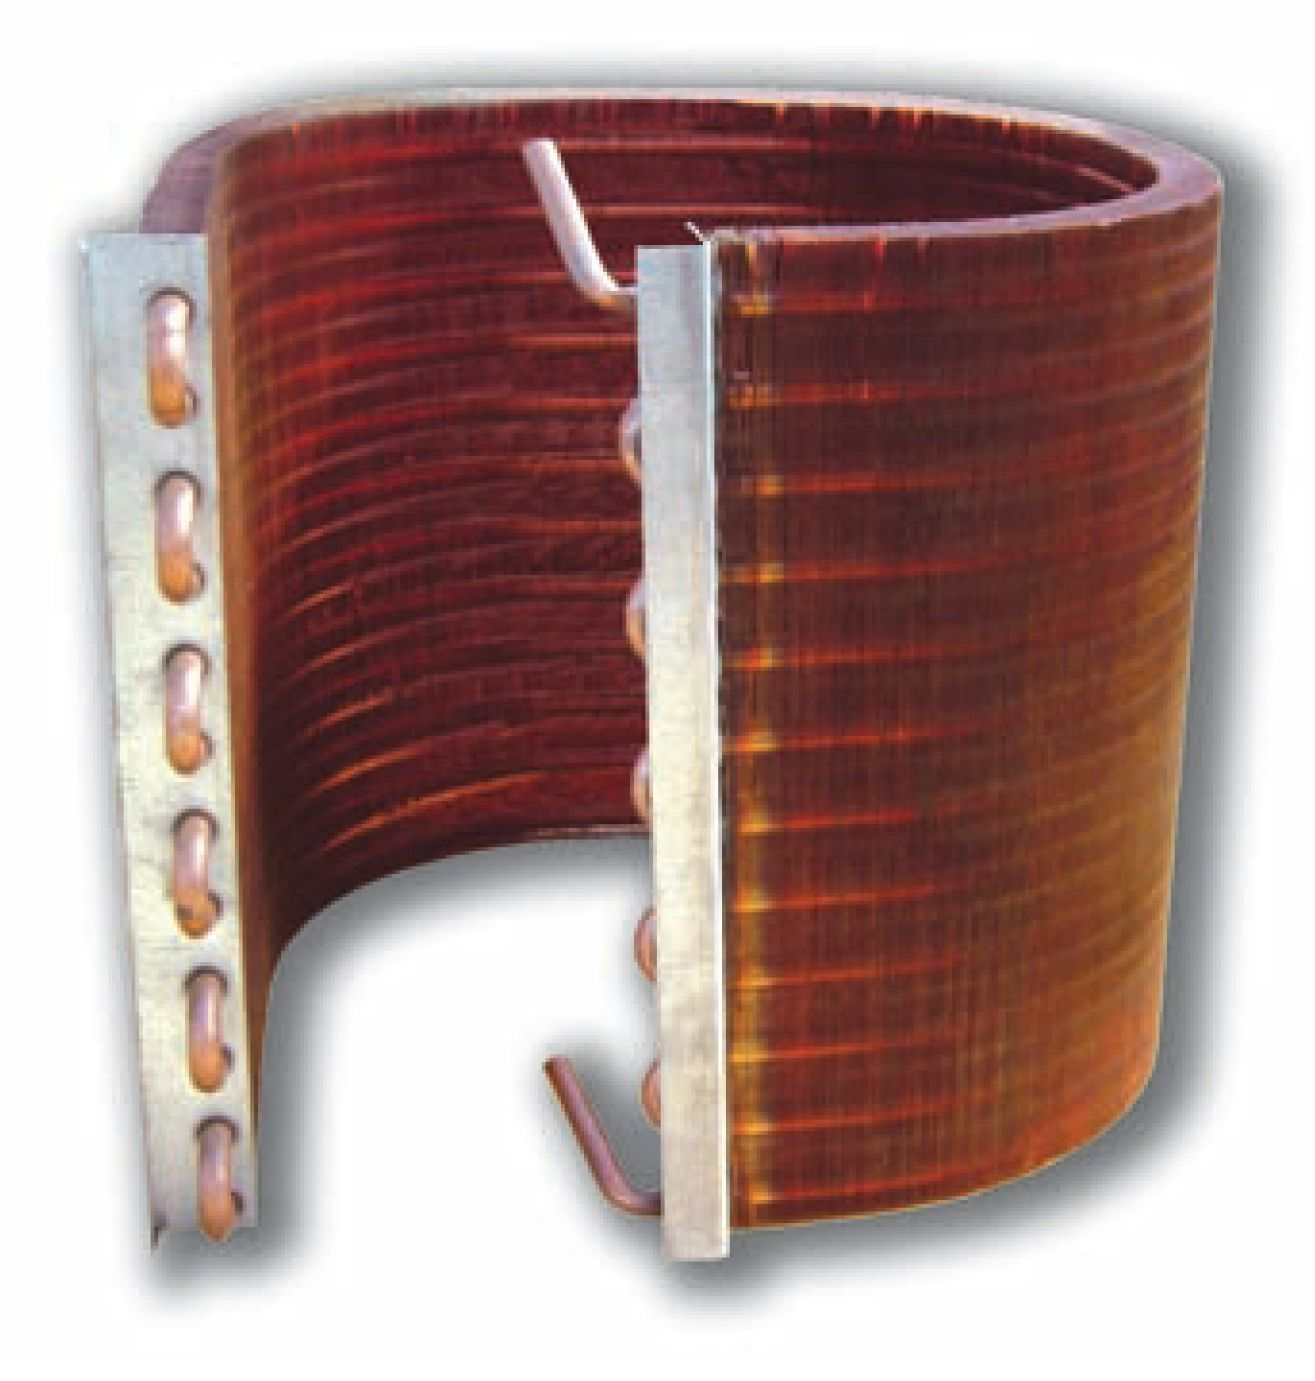 We are manufacture Traditionally, copper cond coil was